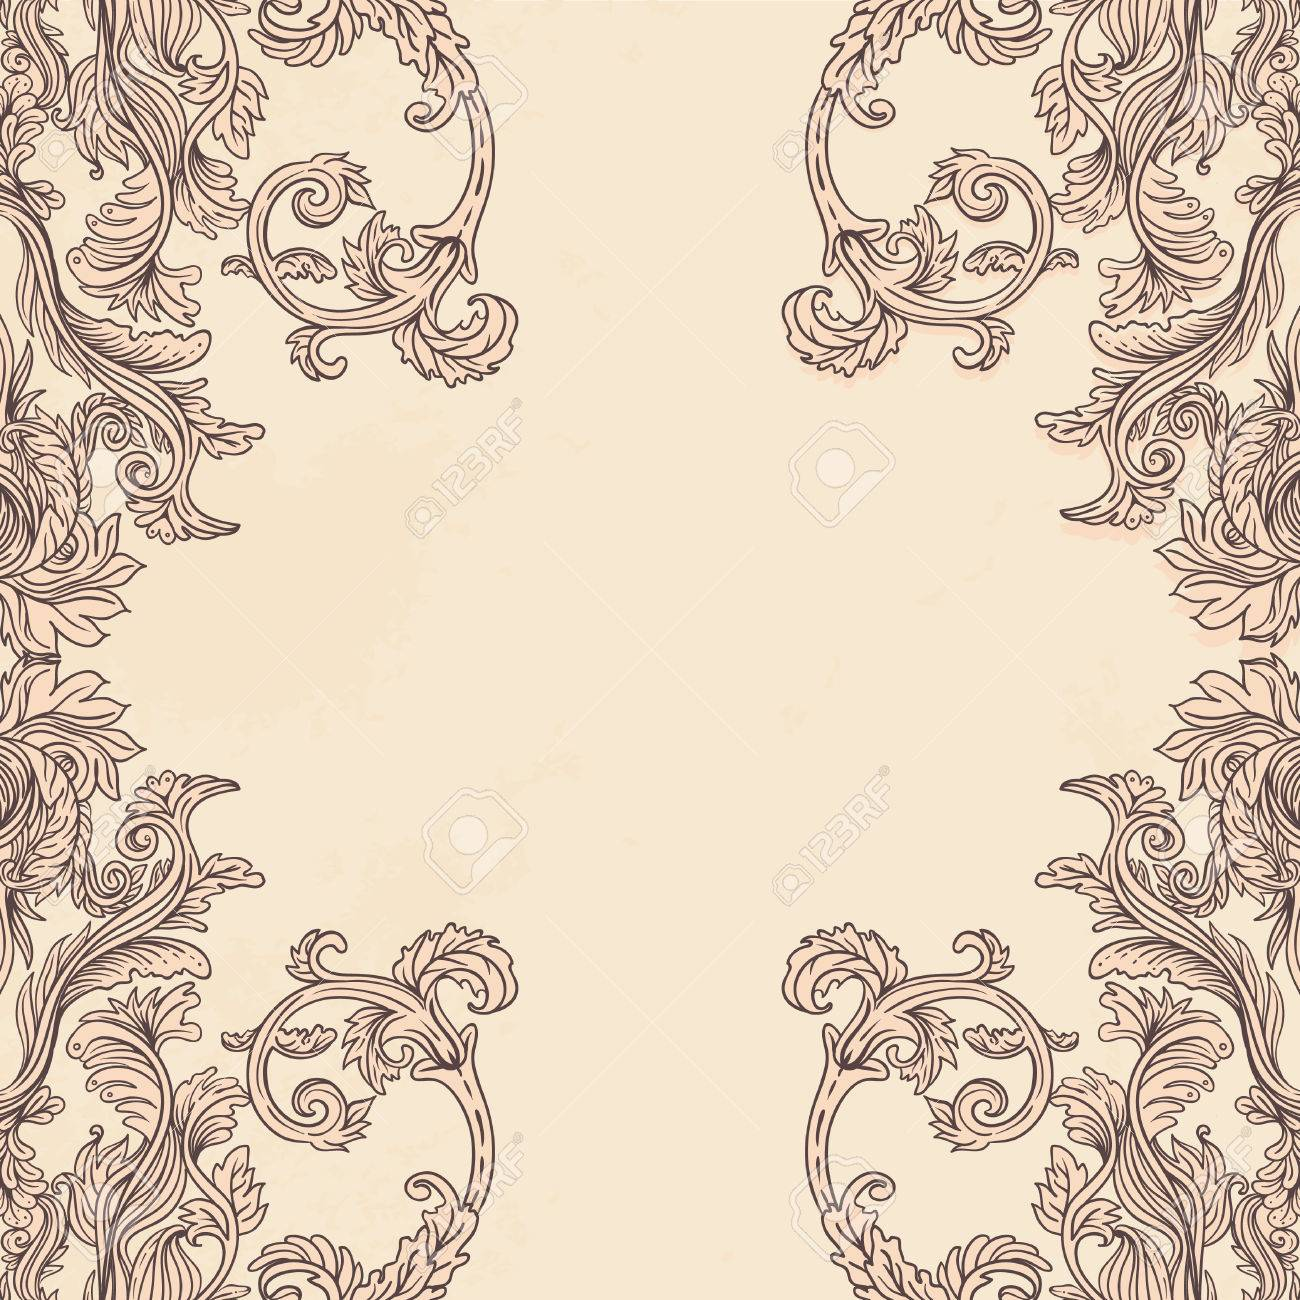 Vintage background ornate baroque pattern vector illustration stock - Vintage Background Ornate Baroque Pattern Vector Illustration Stock Vector 24615878